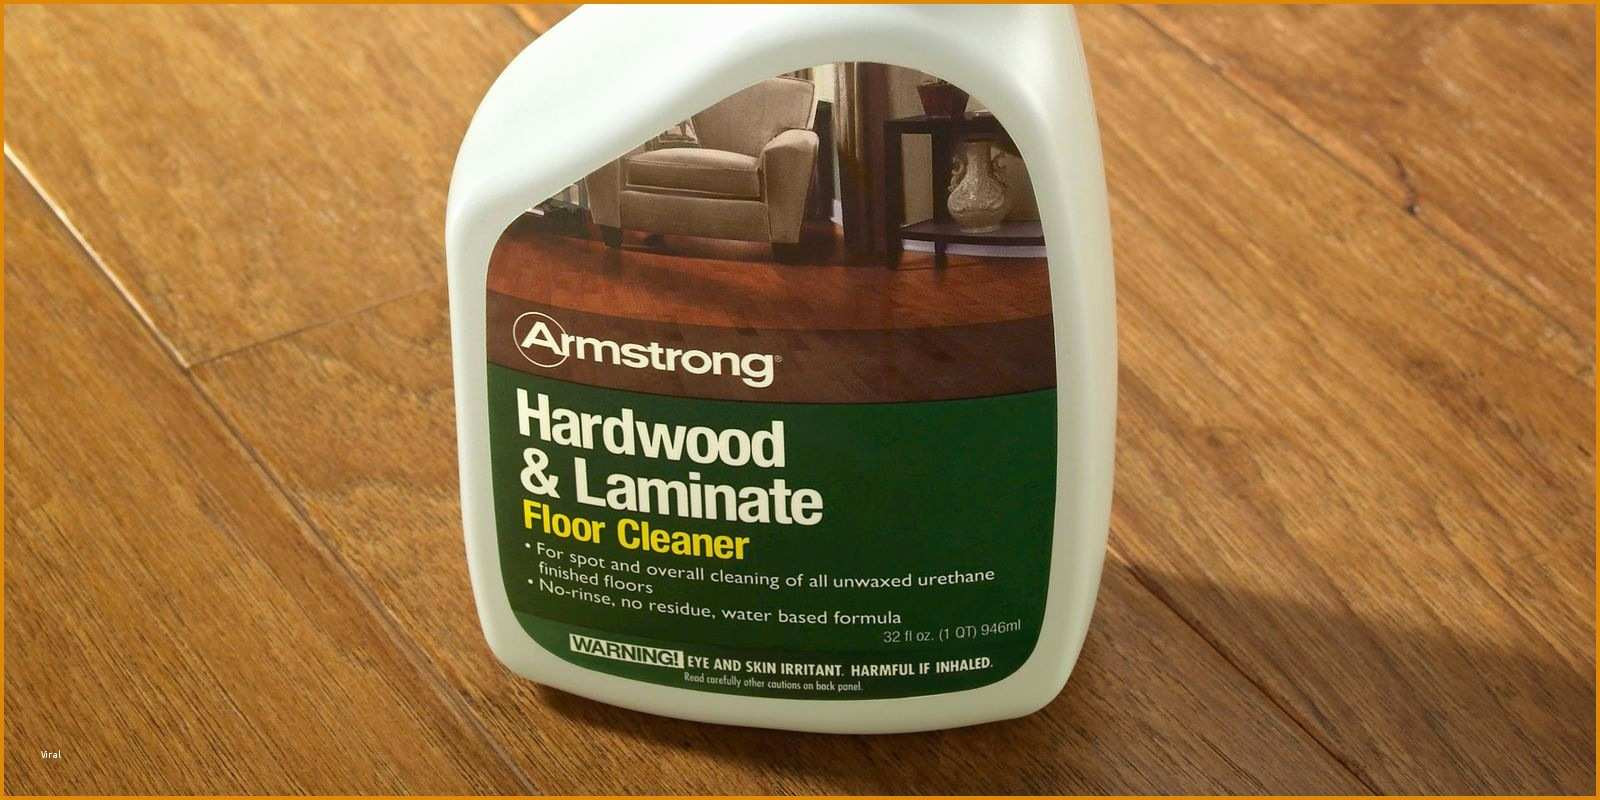 Best Hardwood Steam Floor Cleaners Consumer Reports Of Bruce Hardwood Floor Cleaner Review Www topsimages Com Pertaining to Wood Floor Products Wonderfully Armstrong Hardwood Floor Cleaner Review Of Wood Floor Products Jpg 1600x800 Bruce